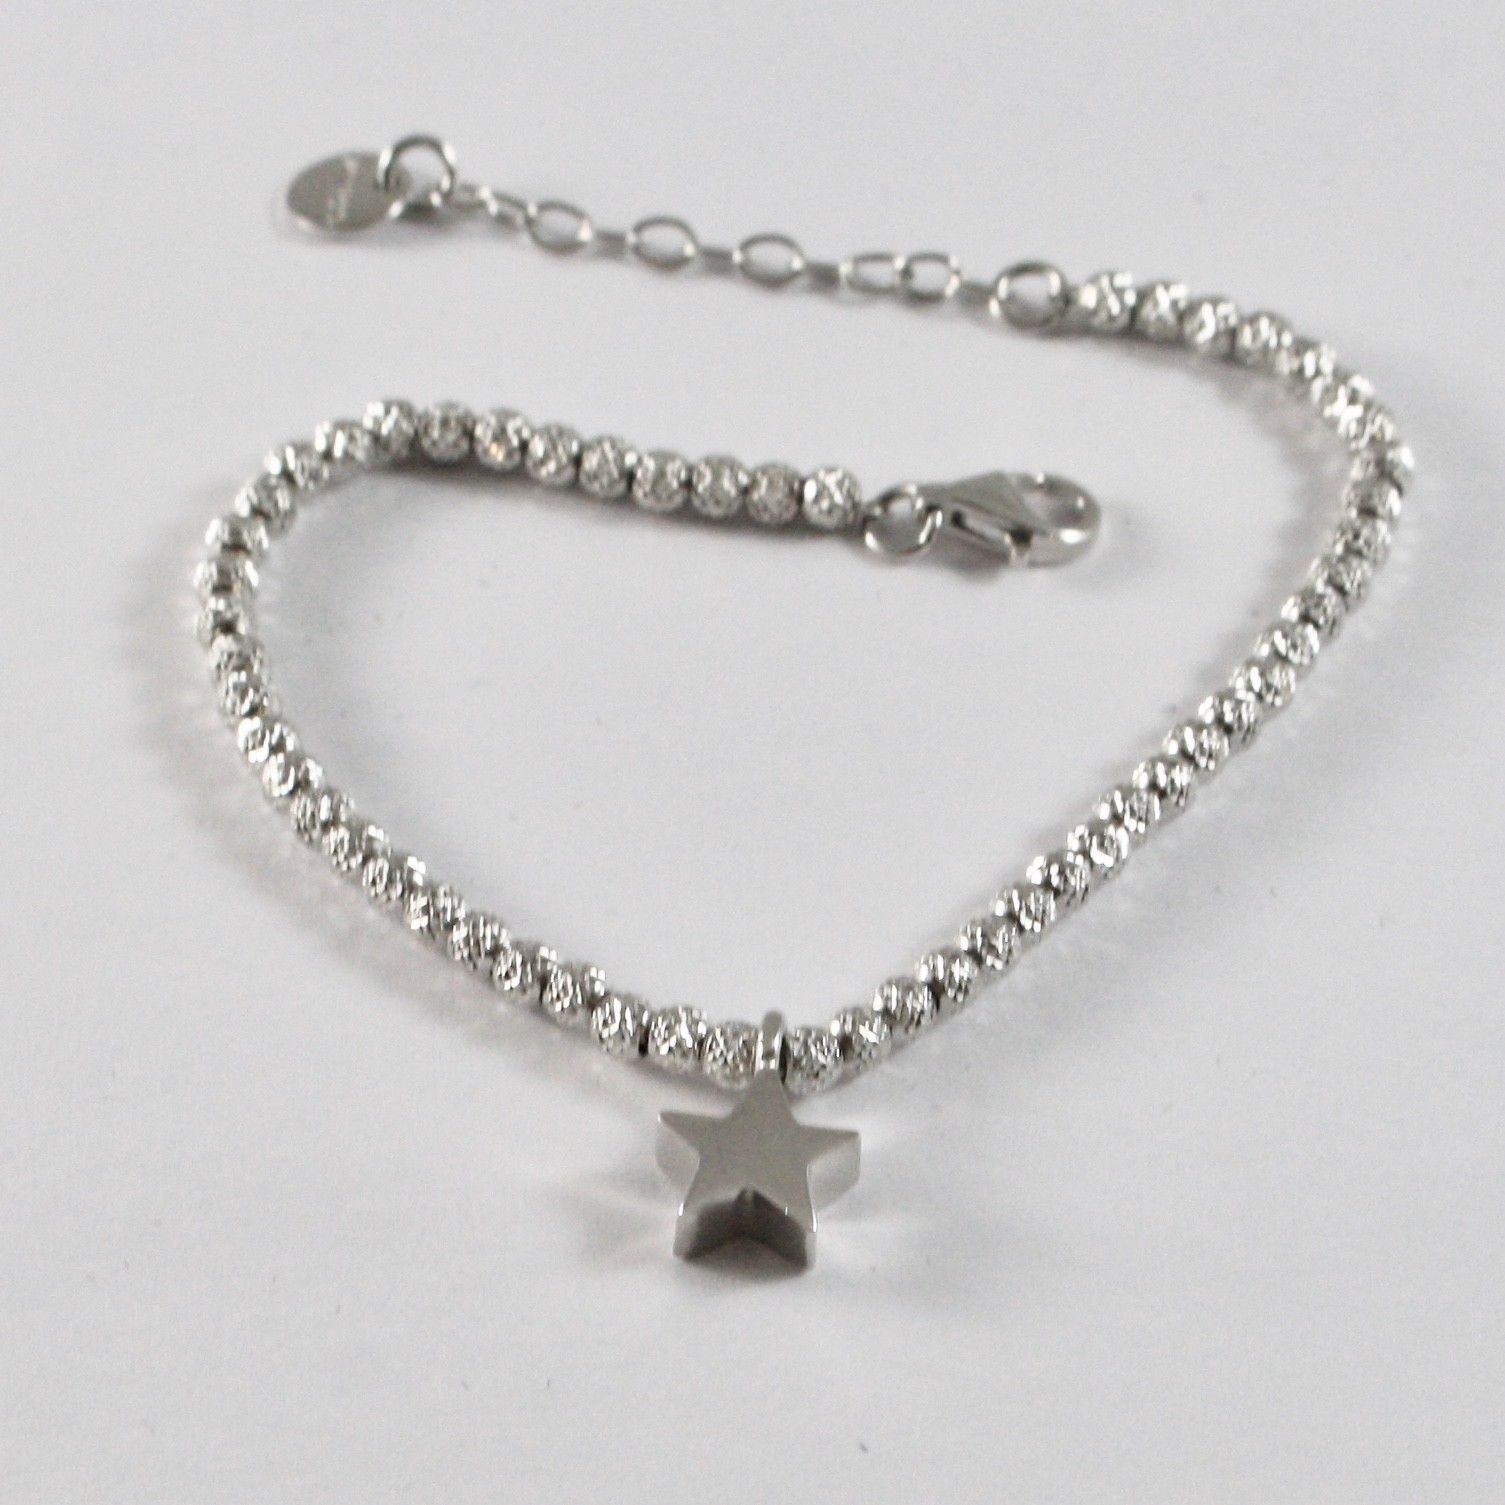 SILVER 925 BRACELET JACK&CO WITH CHARM STAR AND BALLS FACETED JCB0801